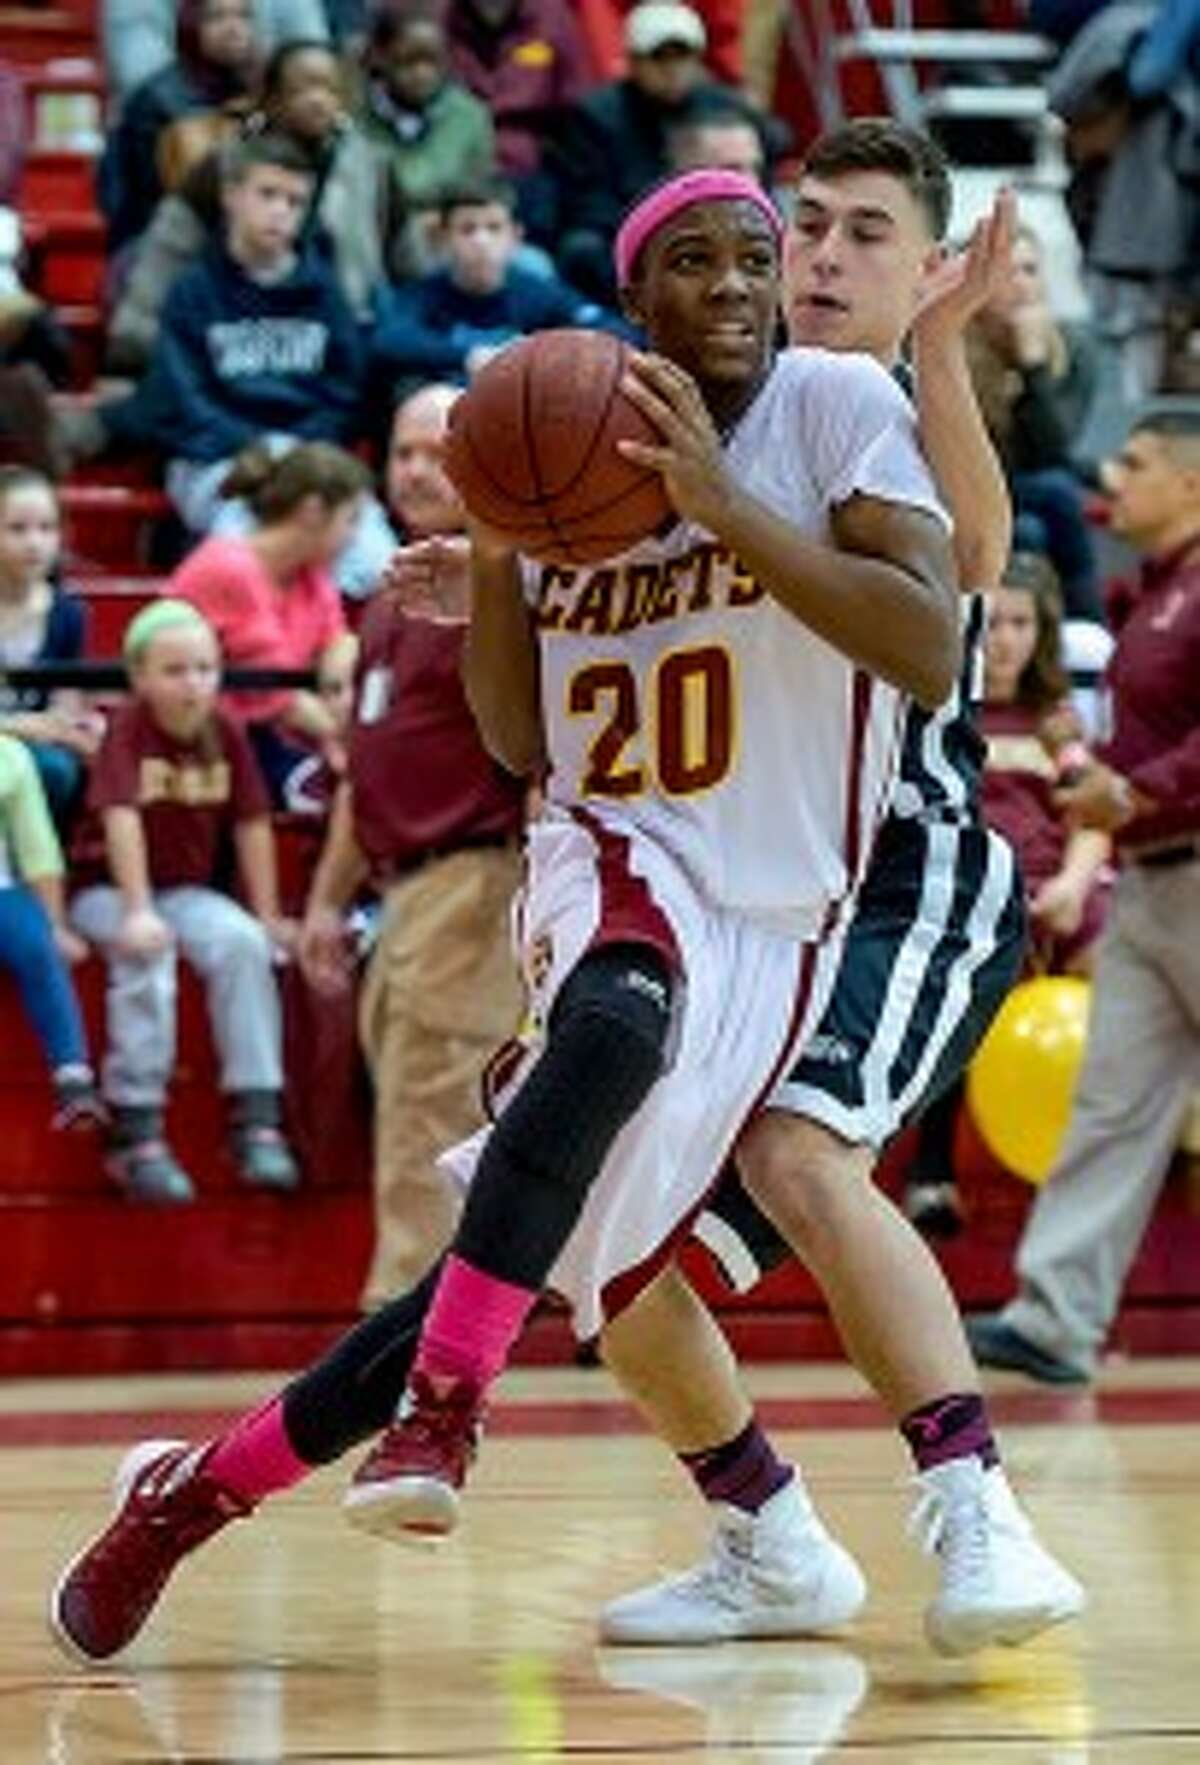 Omar Telfer, driving to the hoop versus Trumbull, scored 12 points in the Cadets' 63-58 win over Bridgeport Central. - David G. Whitham photo